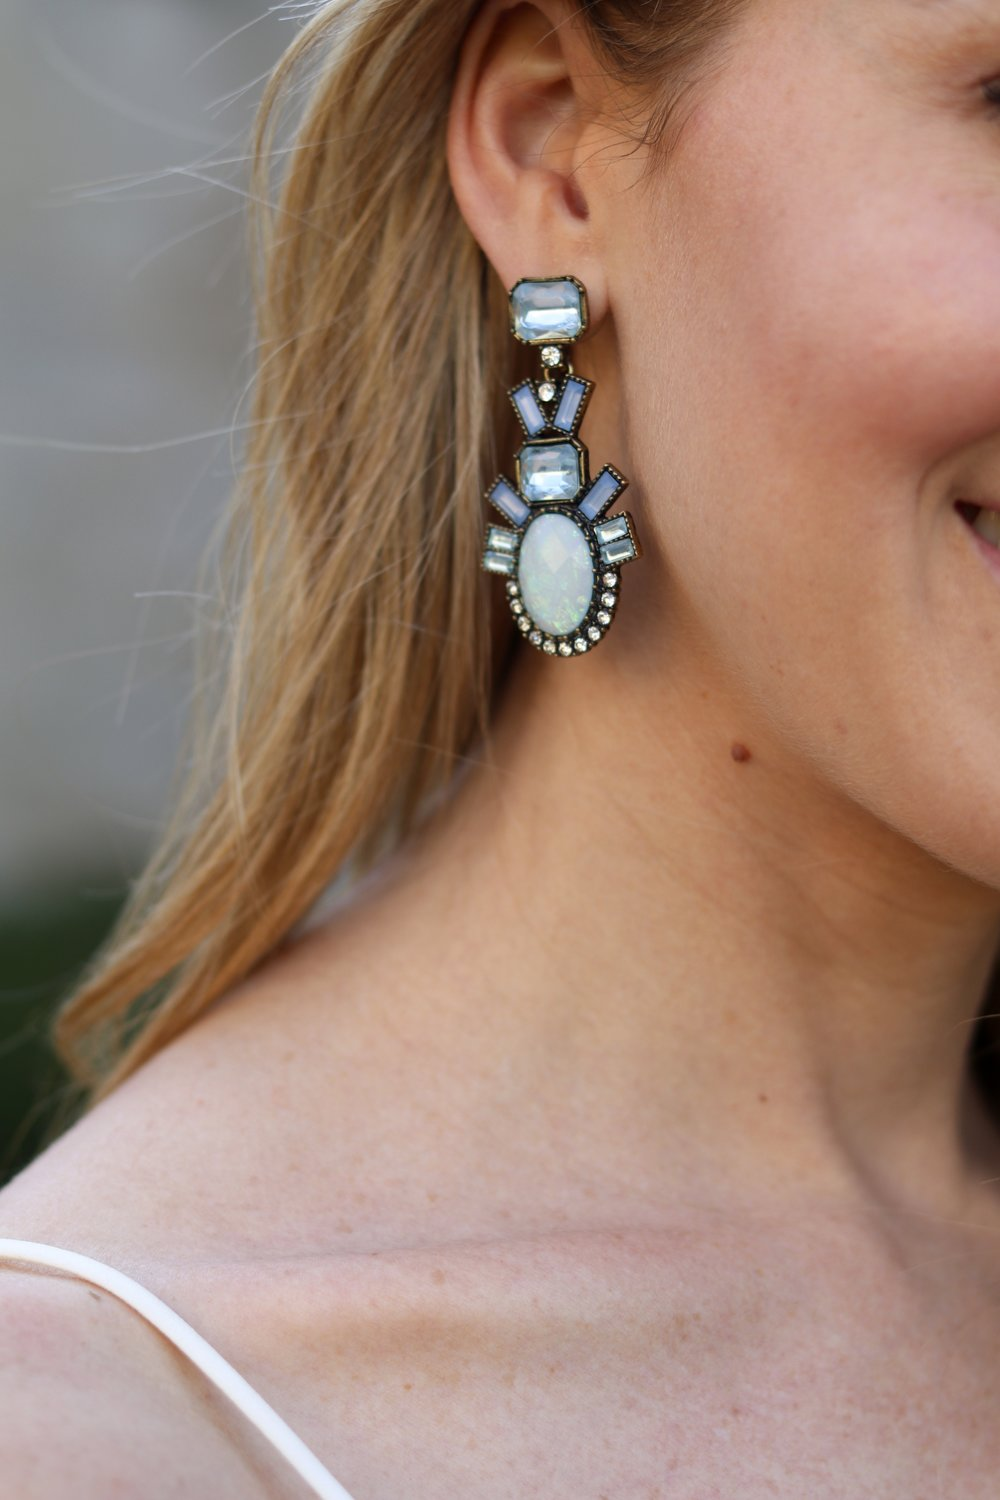 gilt edge | baublebar earrings